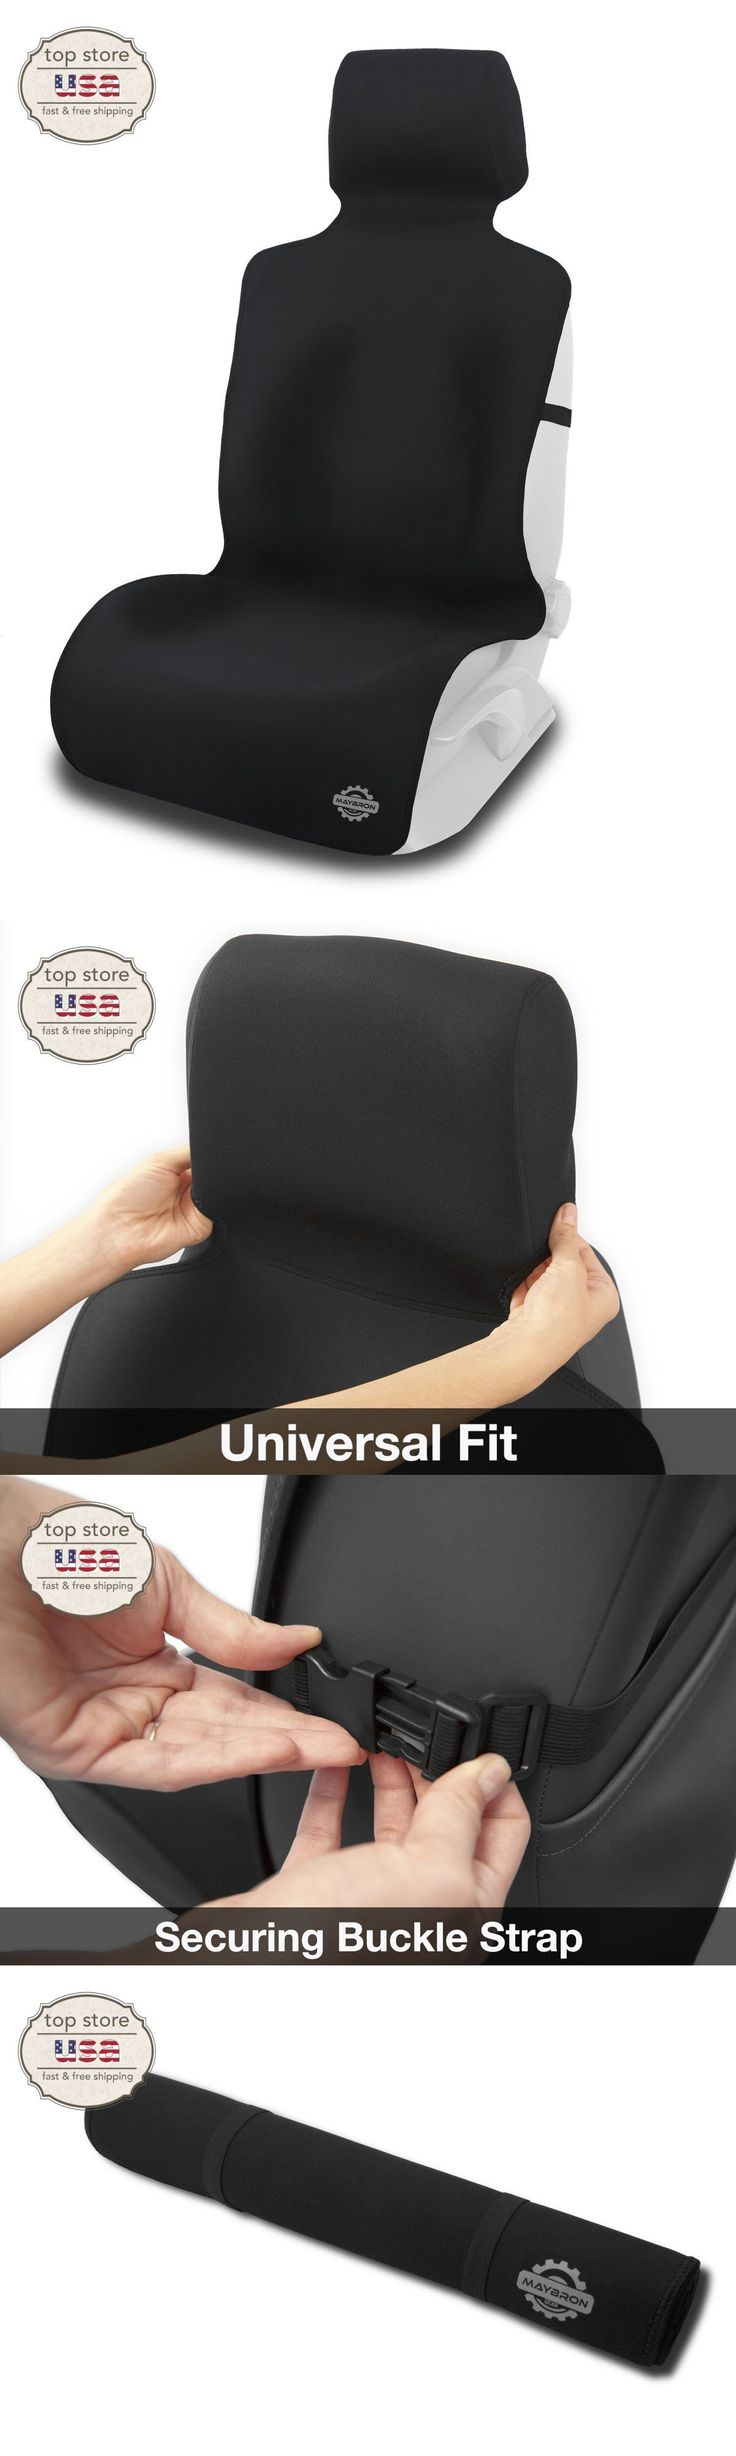 Car Seat Covers 117426: Strong Waterproof Car Seat Cover Seat Saver Protector Great For Sports/Pets New BUY IT NOW ONLY: $43.44